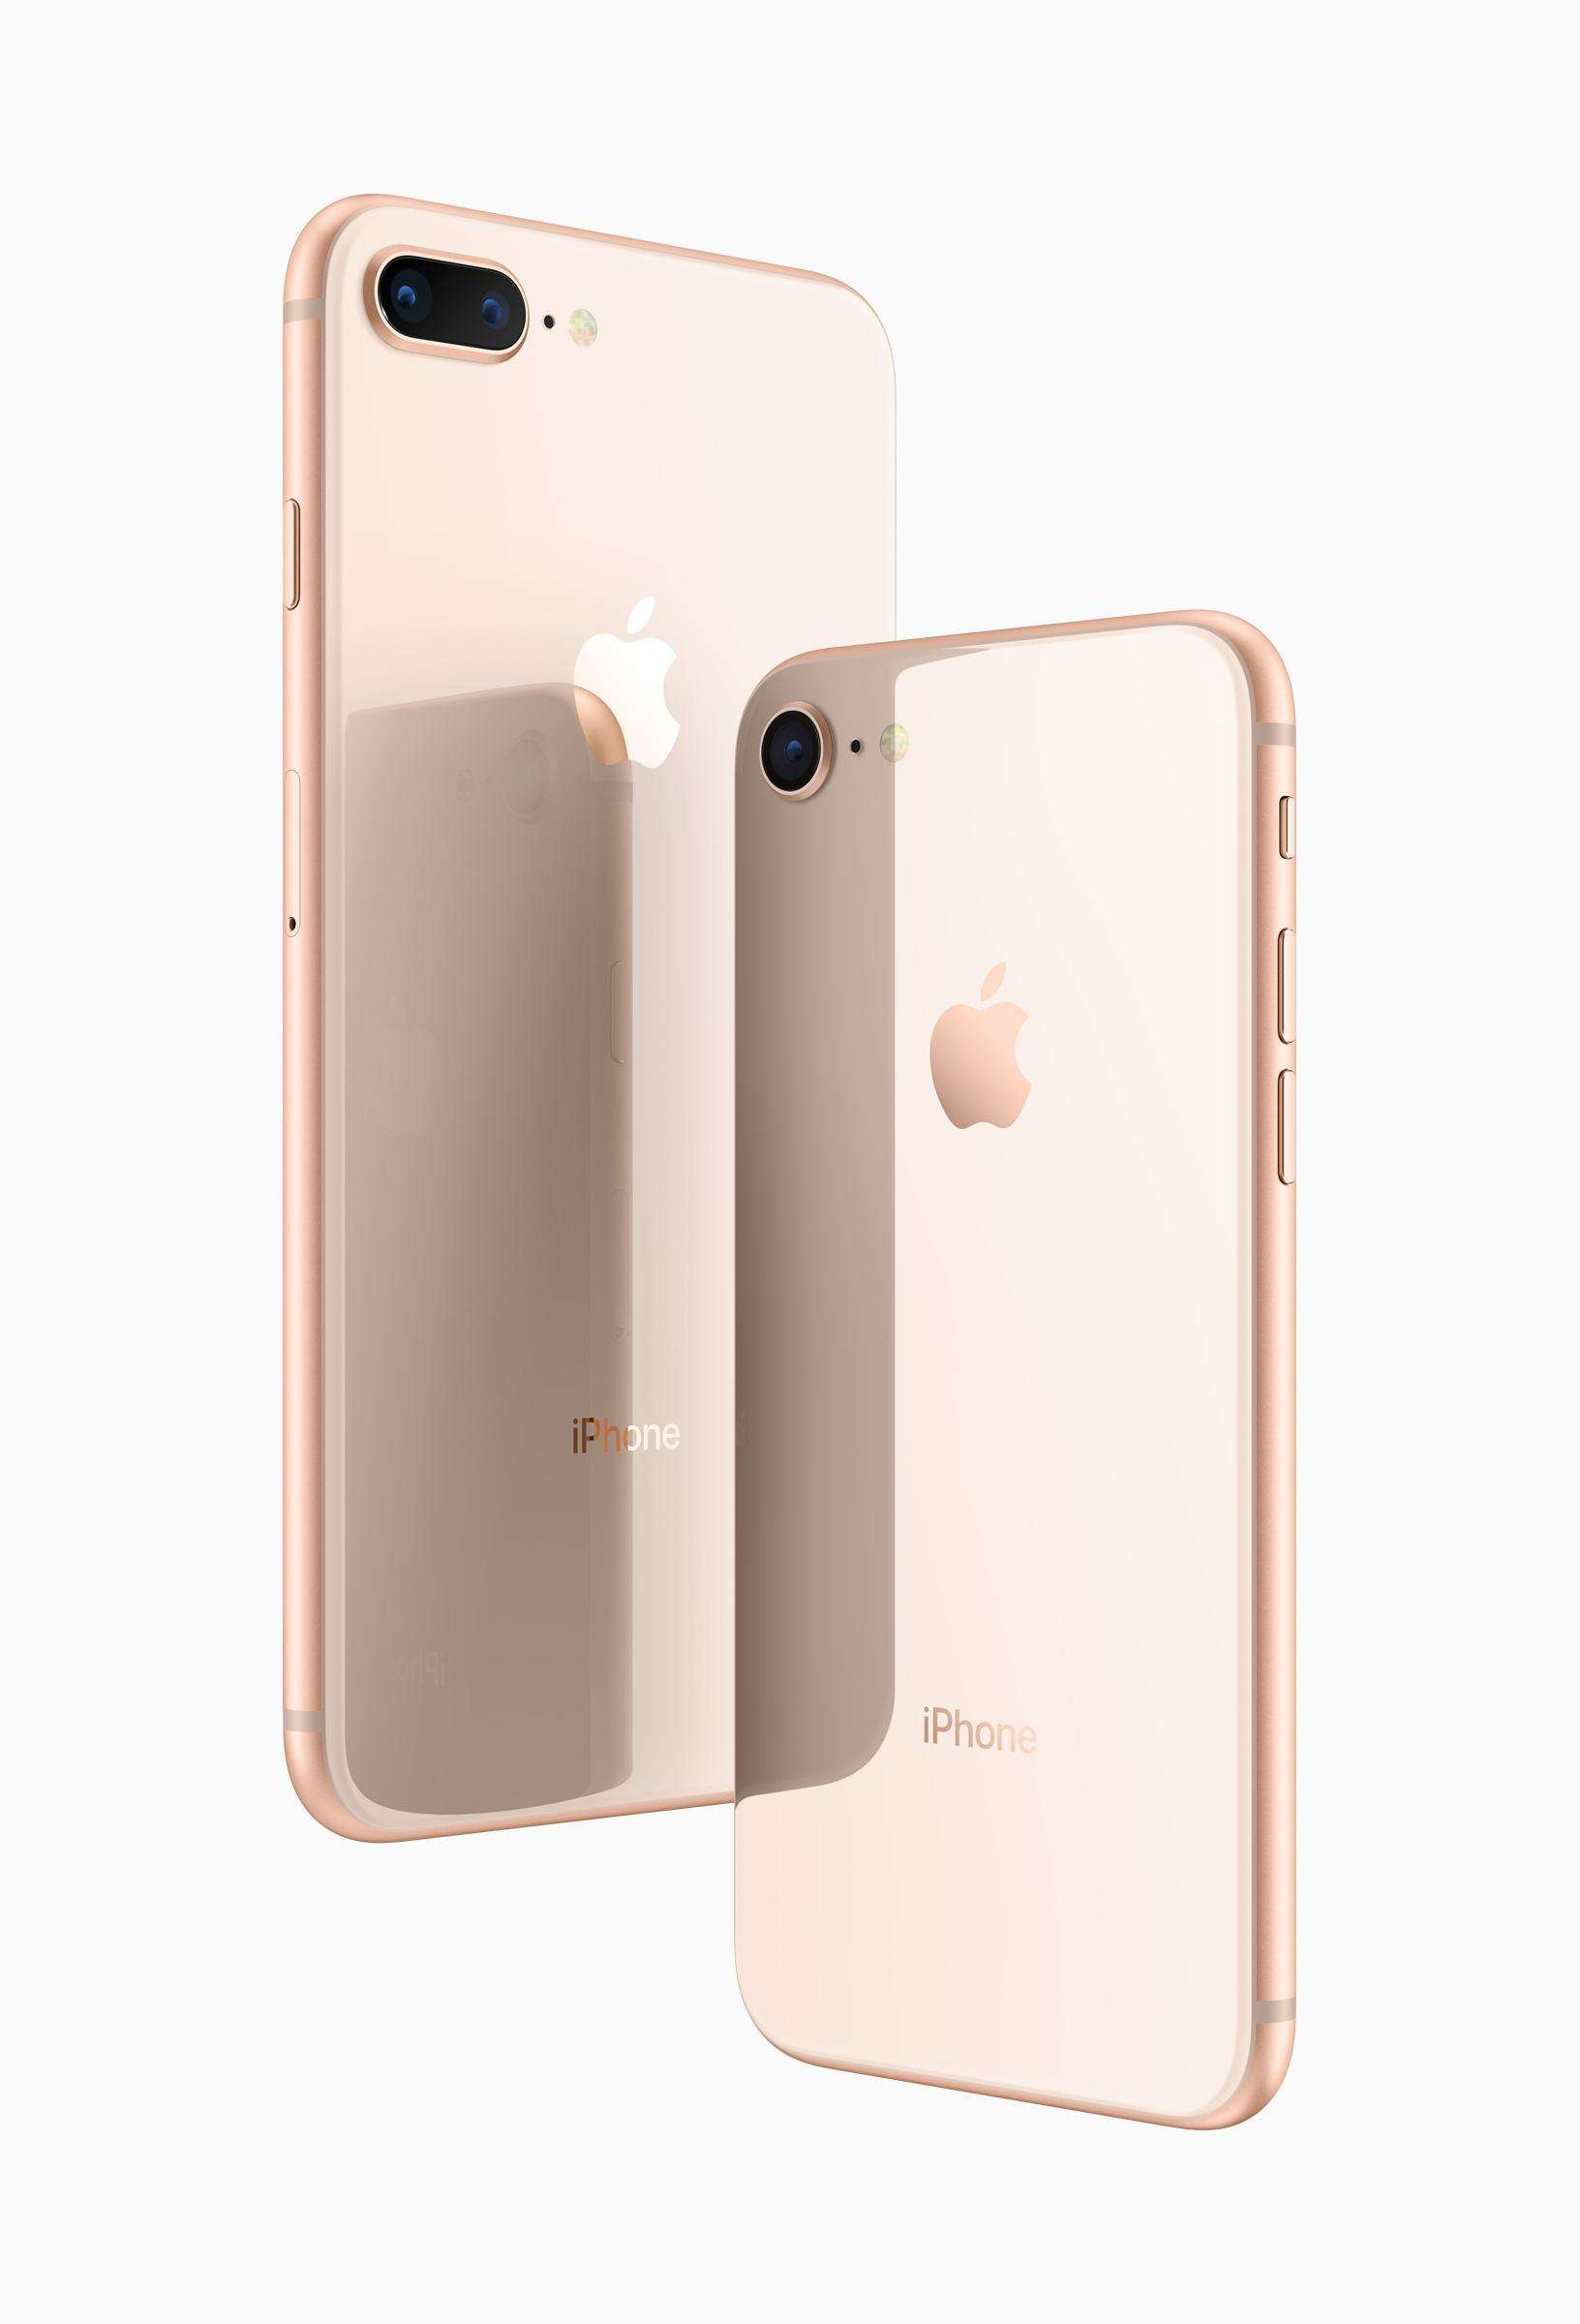 Apple launches iPhone 8 and iPhone 8 Plus: India pricing, availability and other details | Gadgets Now